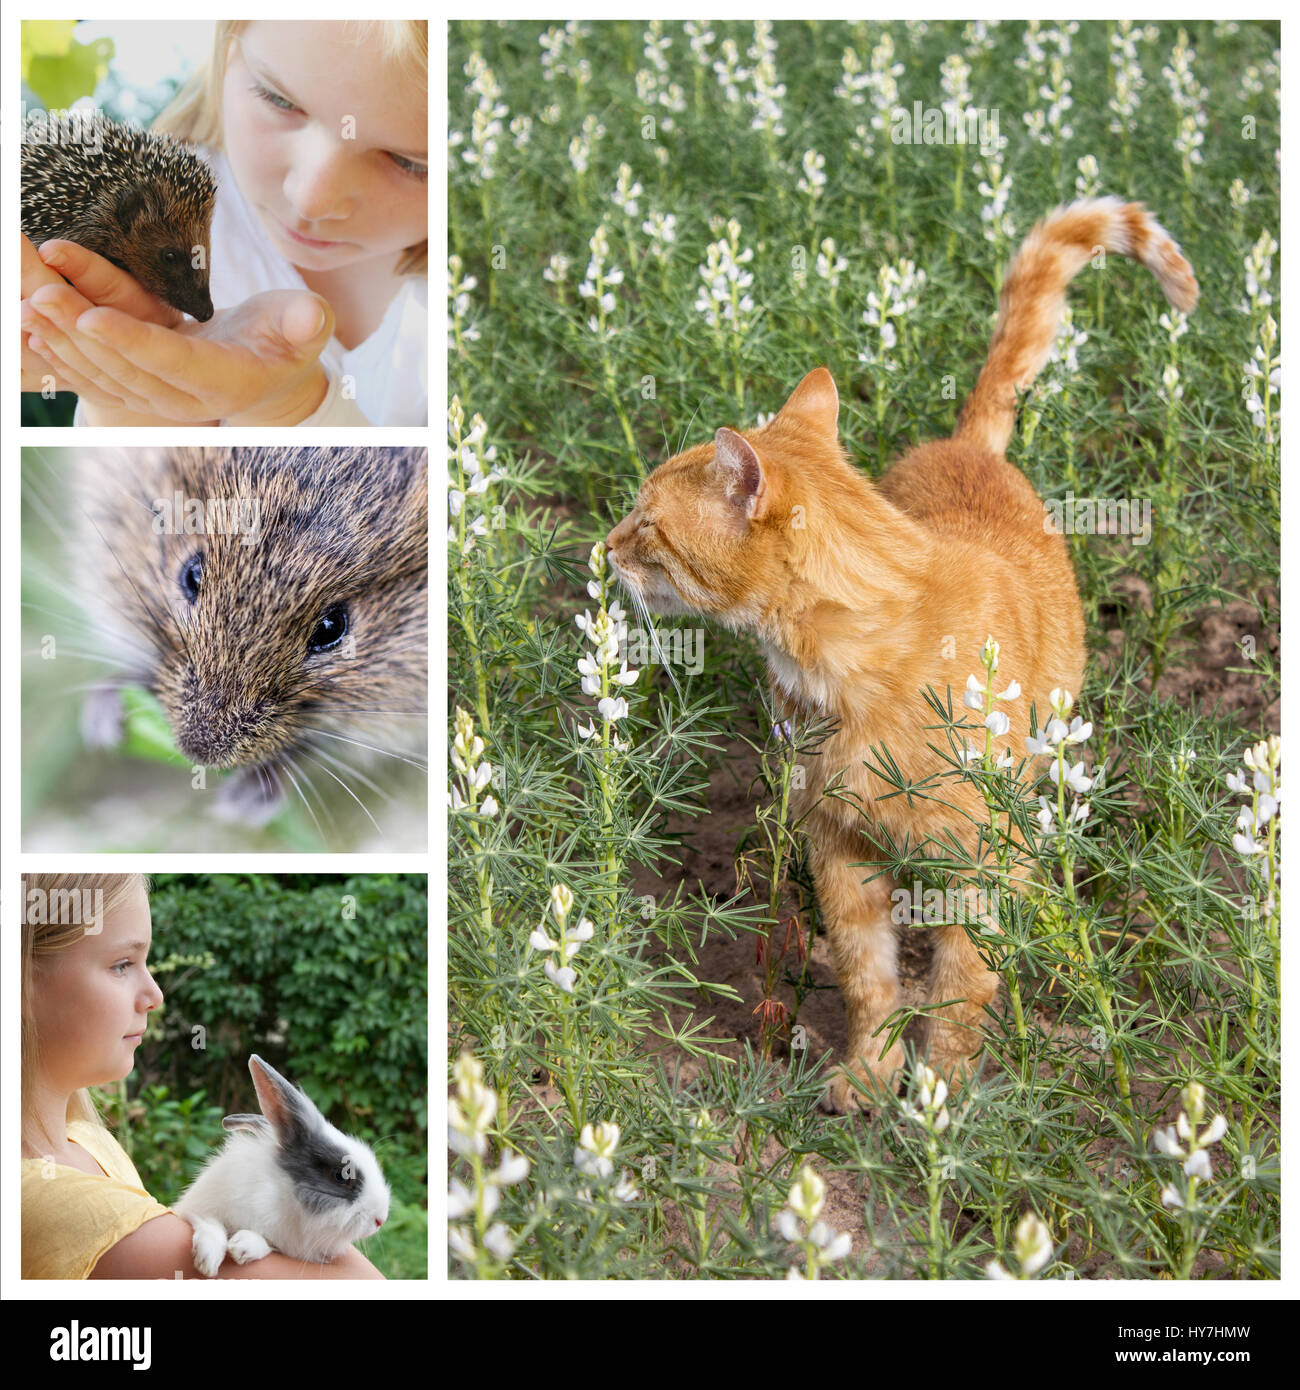 Collage with animals and children in the garden - Stock Image